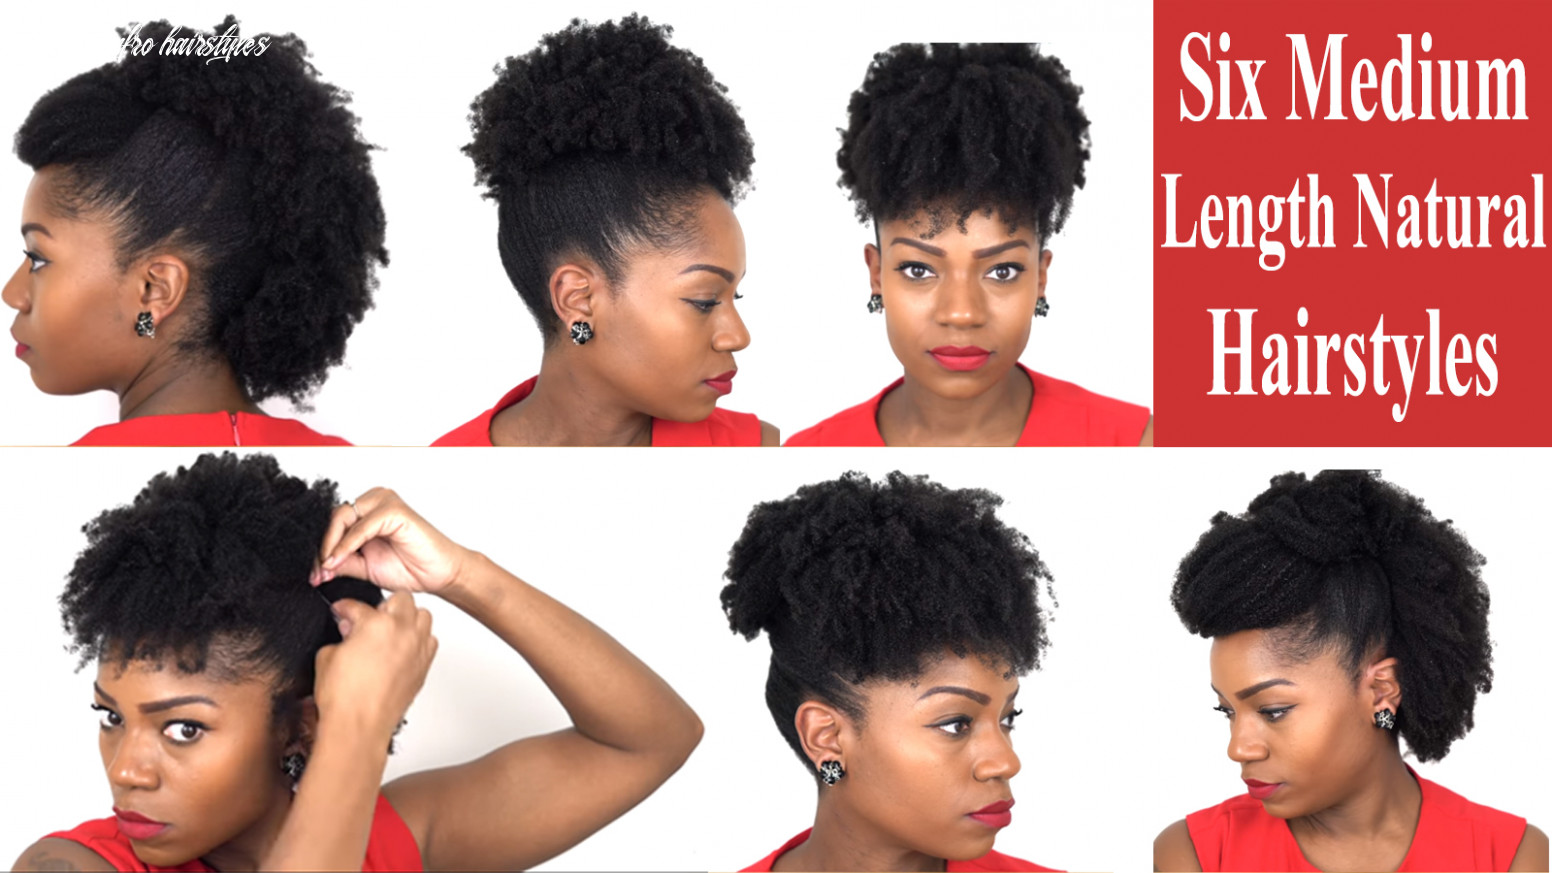 Six fabulous hairstyles for medium length natural hair great for